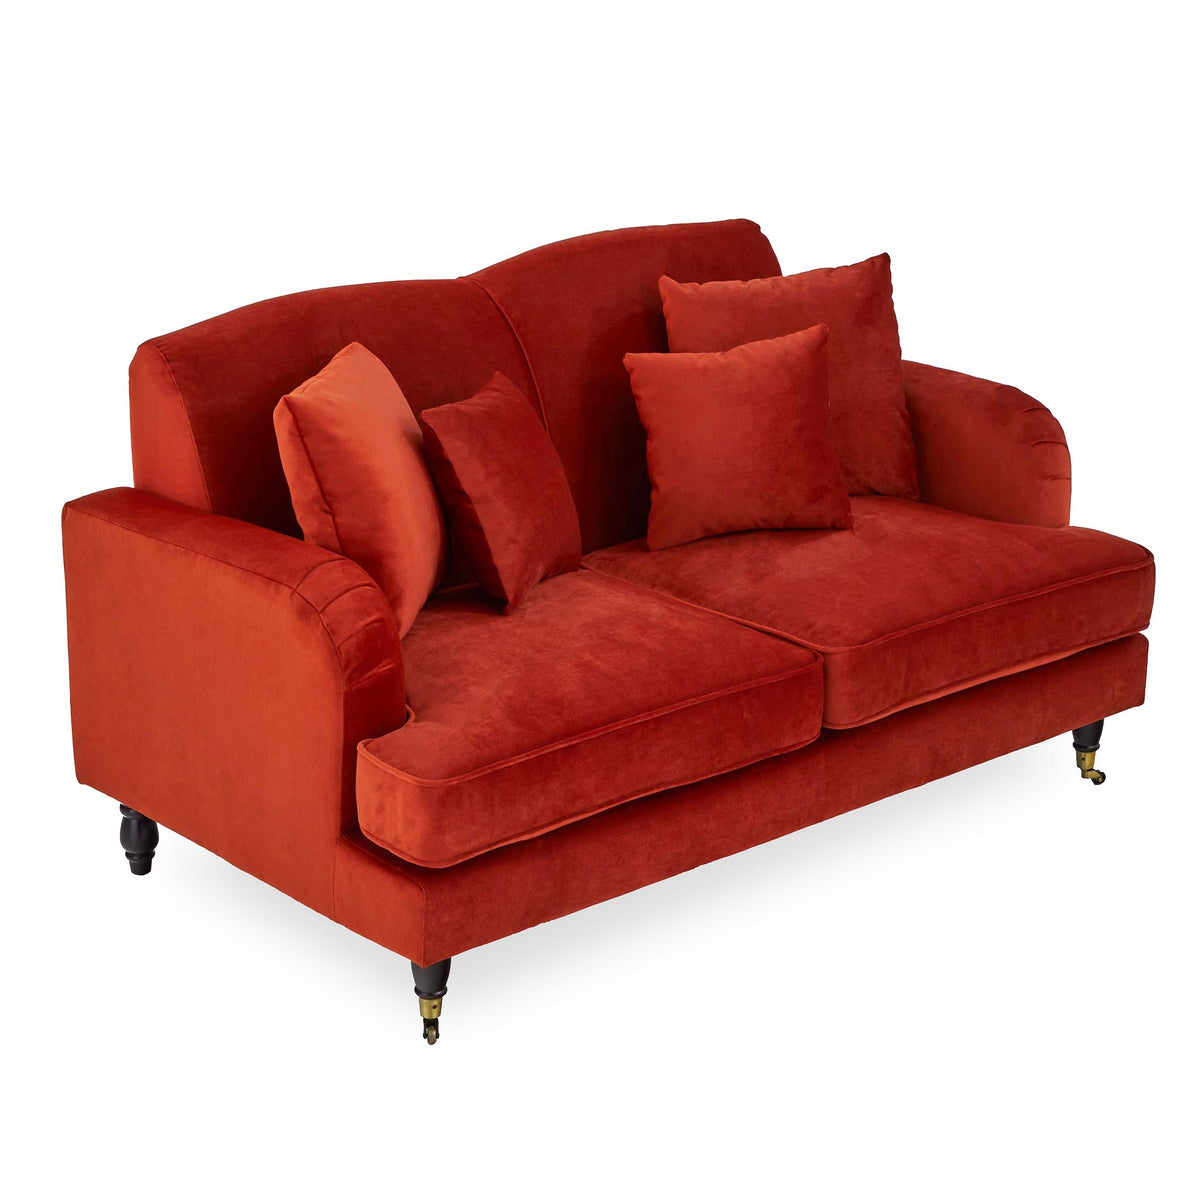 Piper Apricot 2 Seater Couch from Roseland Furniture